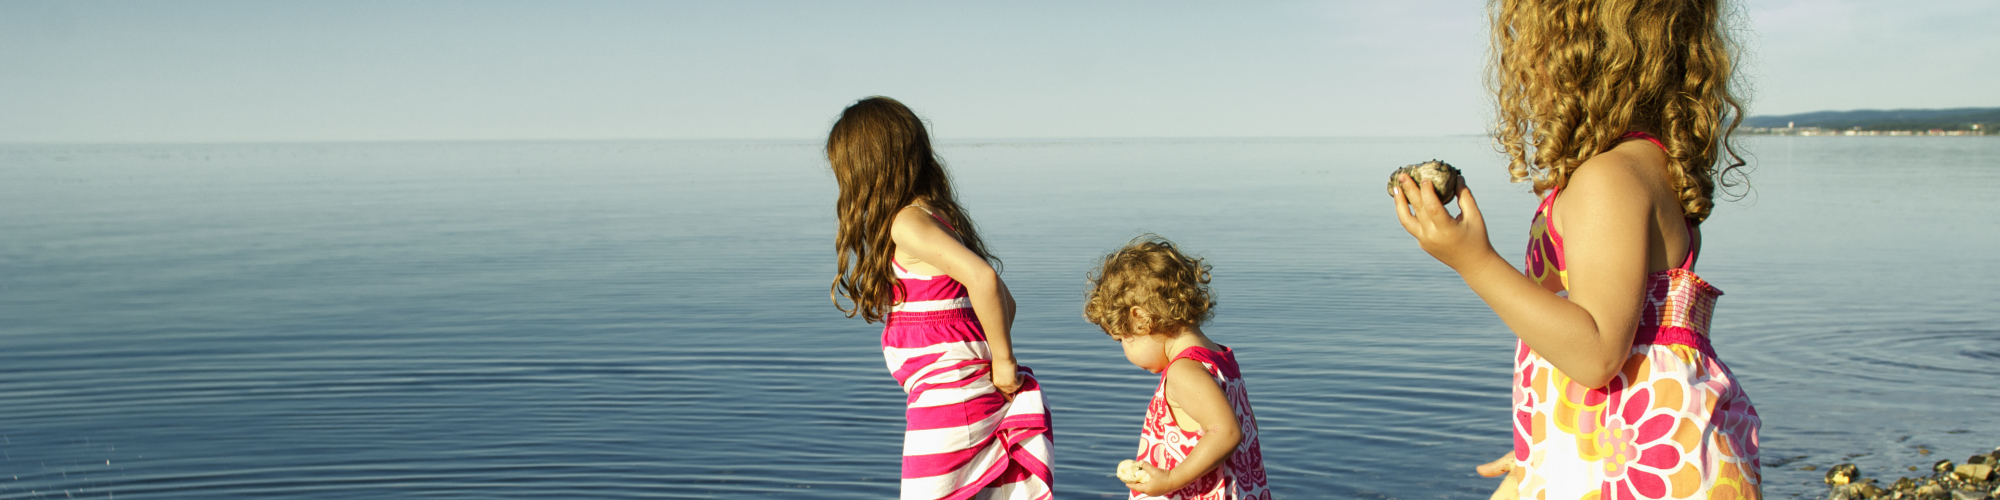 3 little girls playing on the beach, near the water